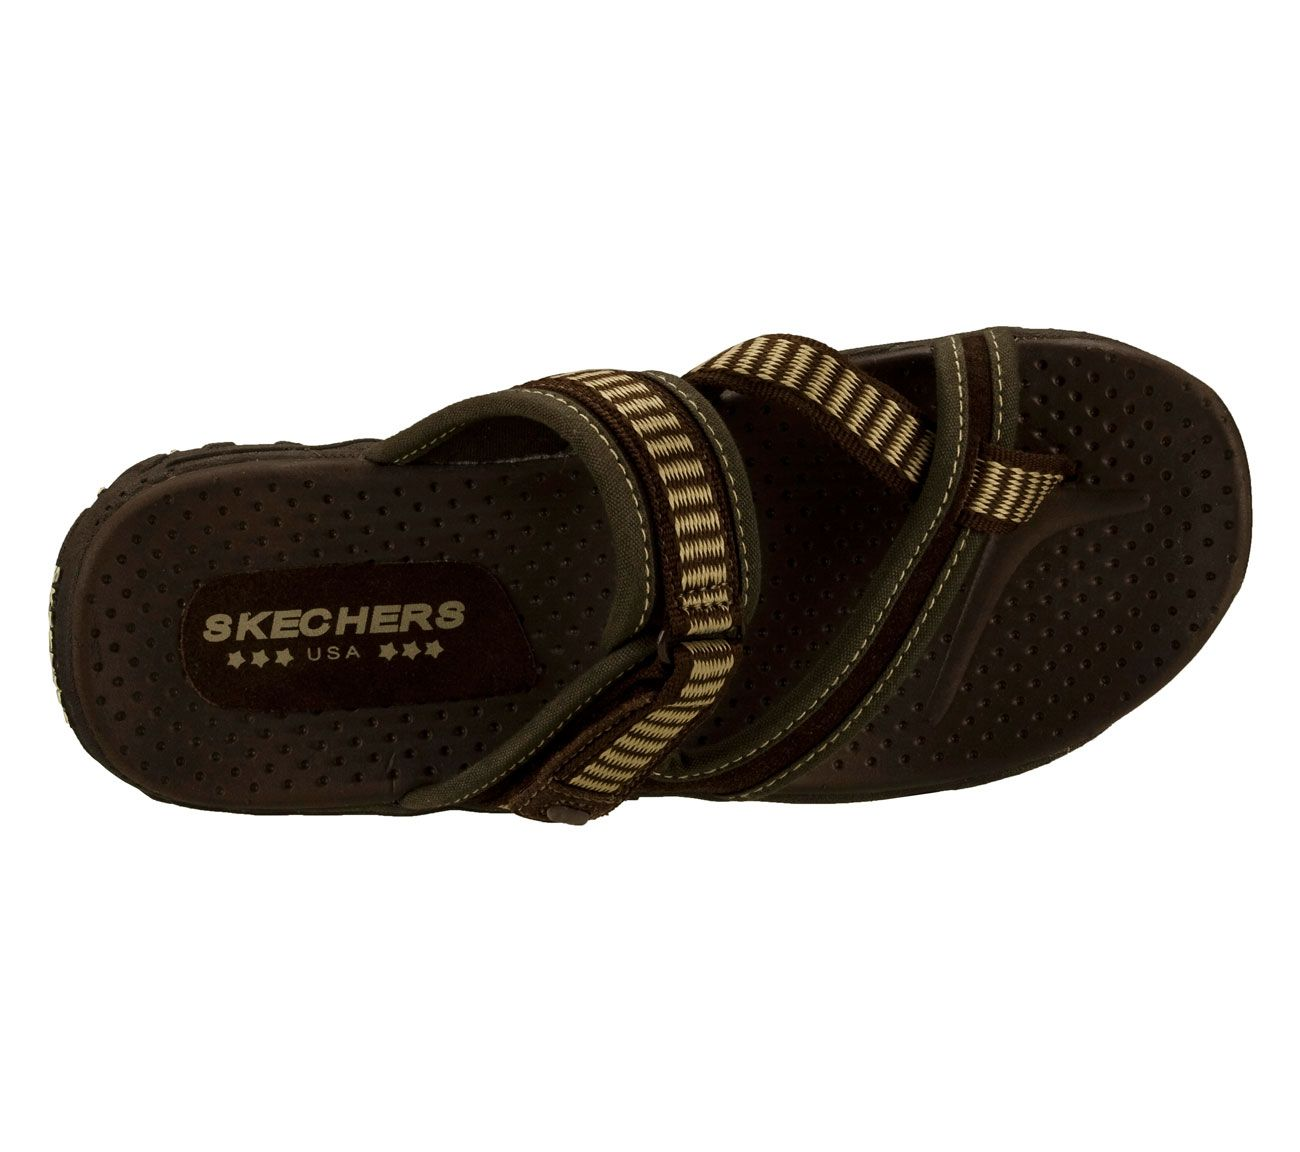 5fdb0a83 Love these Skechers sandals! | Disney | Skechers, Shoes, Sandals